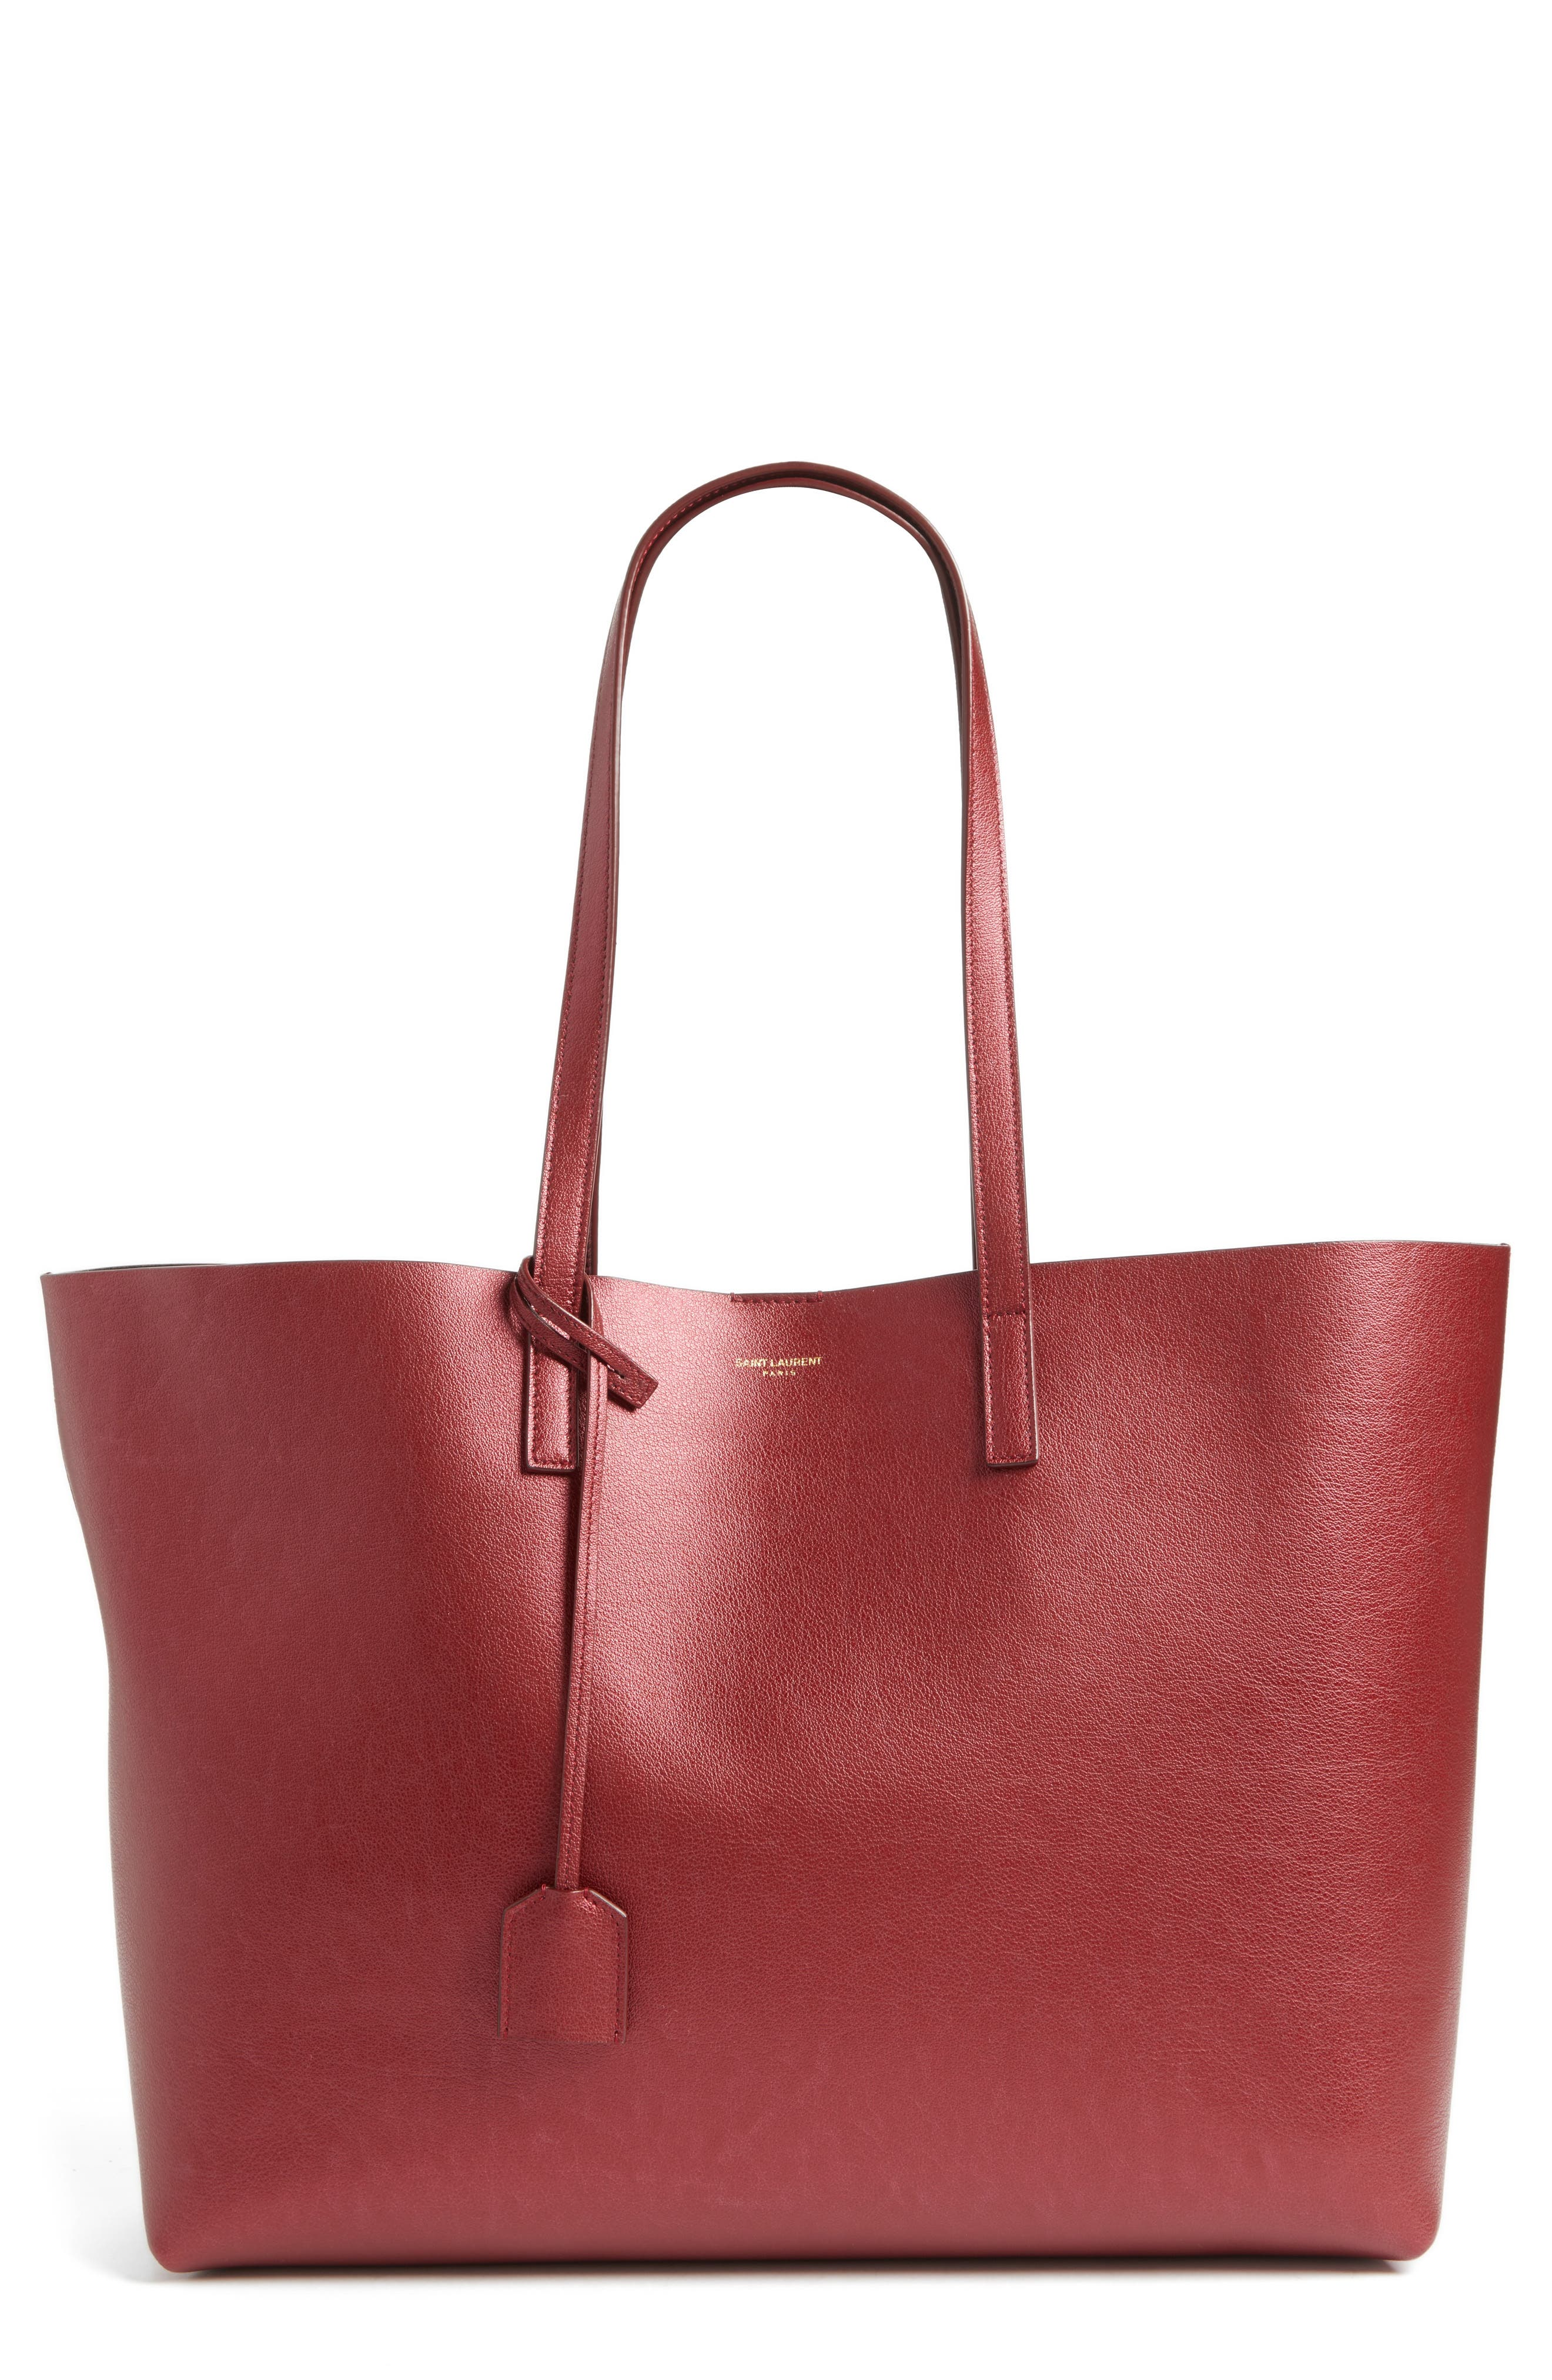 SAINT LAURENT East/West Leather Tote with Zip Pouch